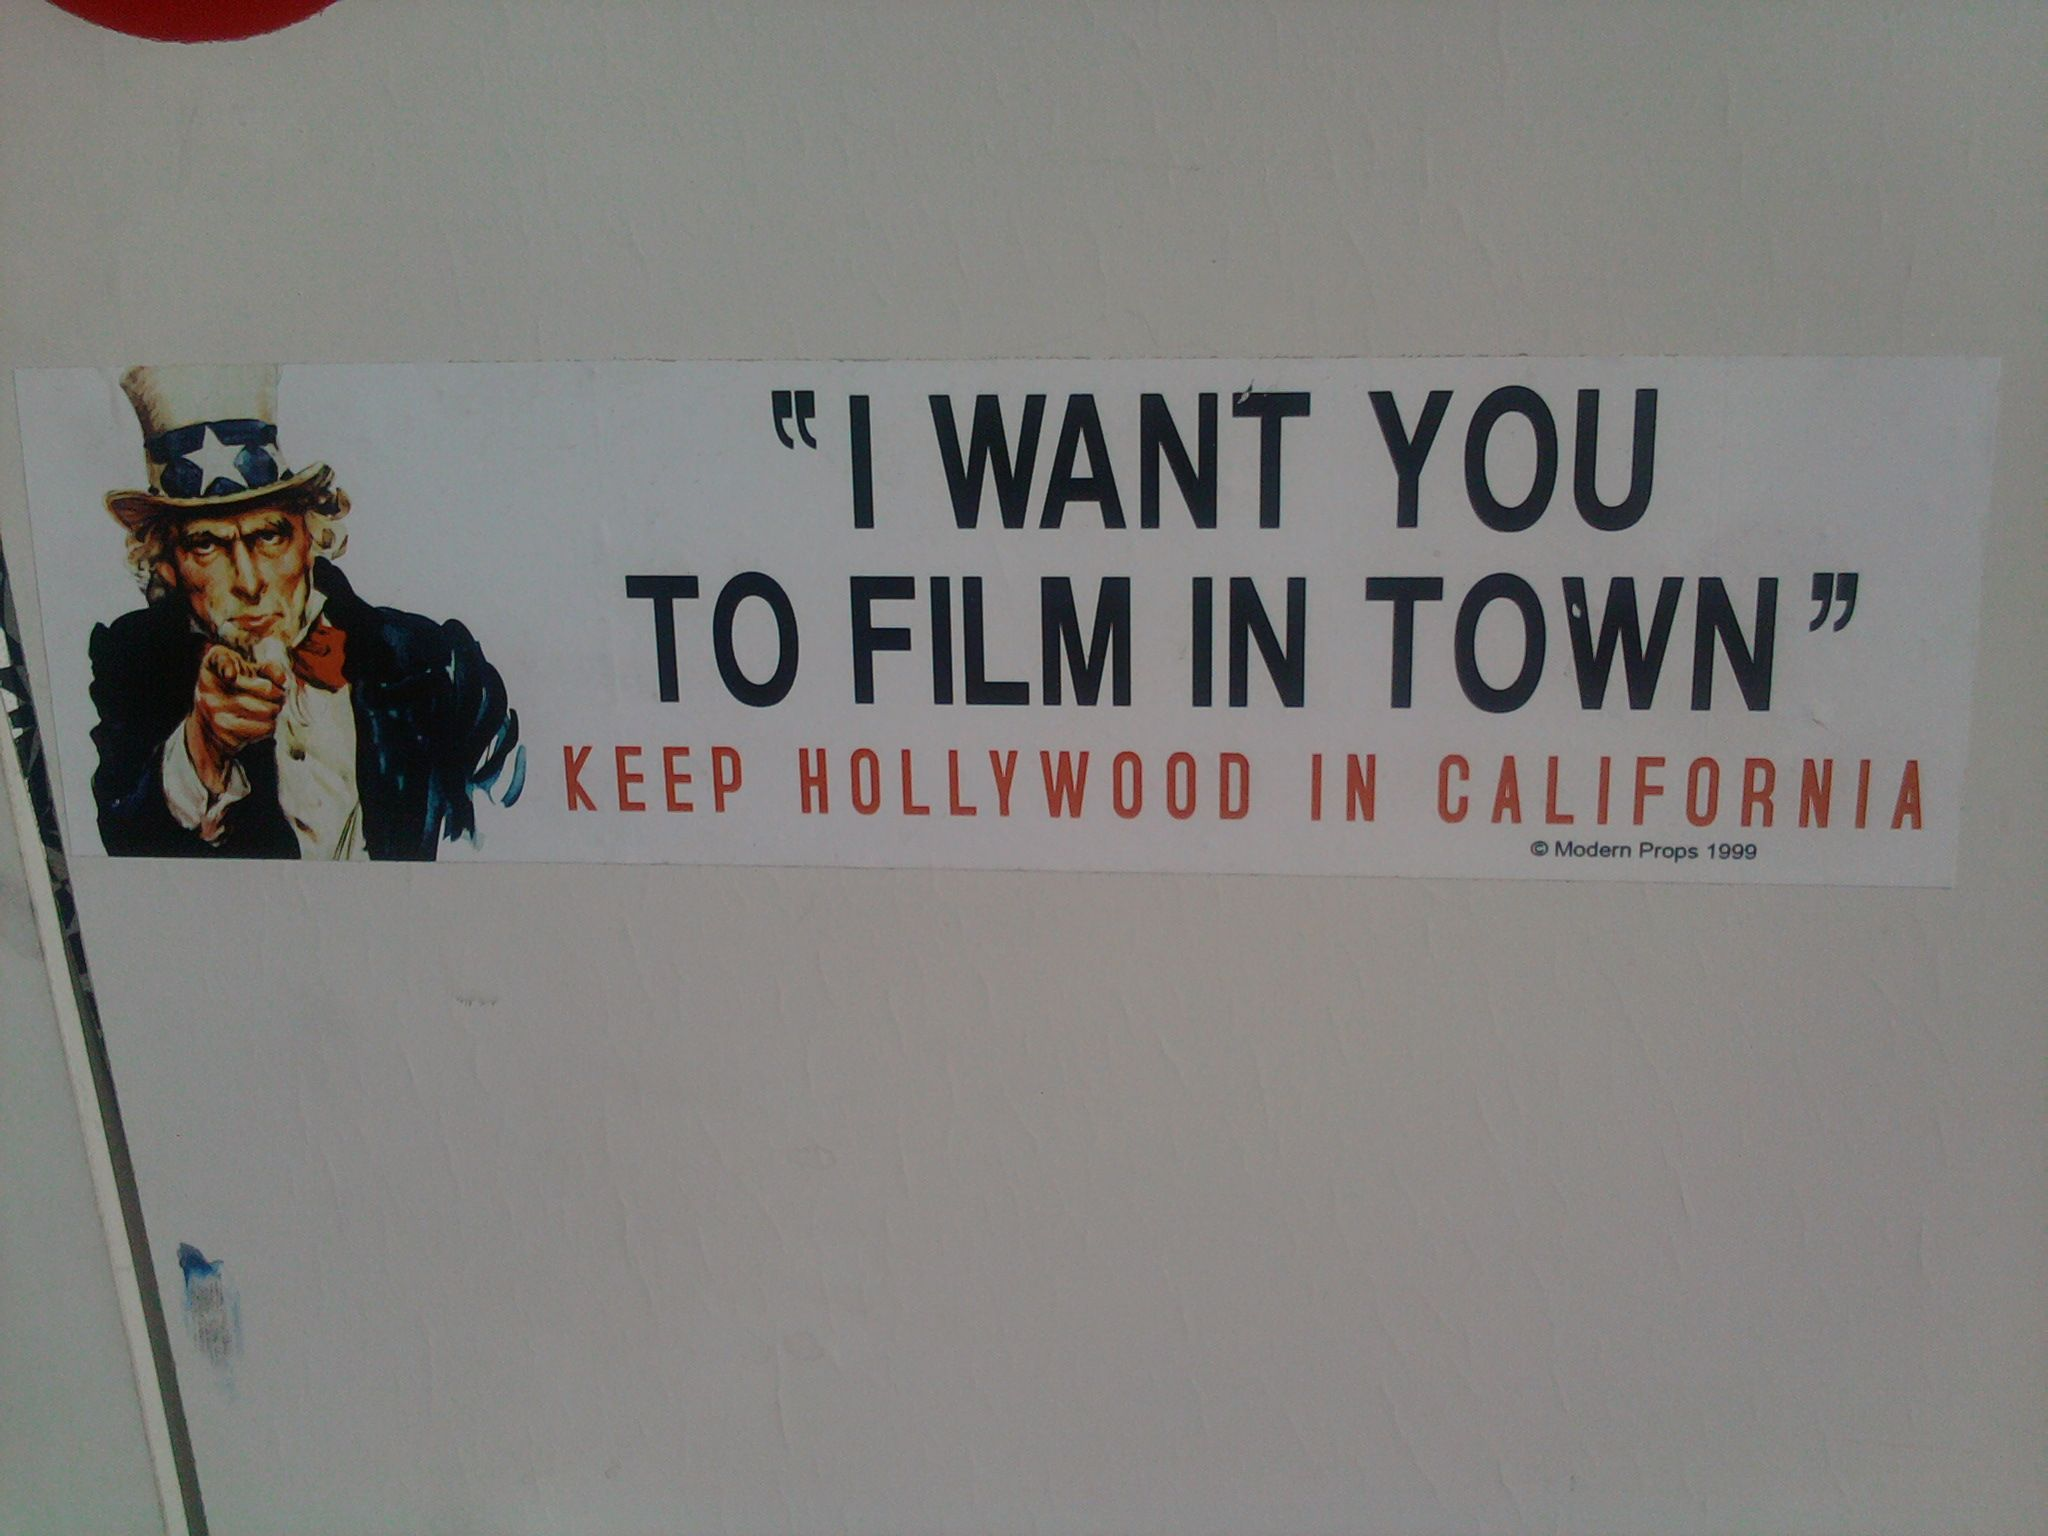 'Filming it Local' as an international festival makes sense to us...even in Hollywood. Film it here, if you are here!